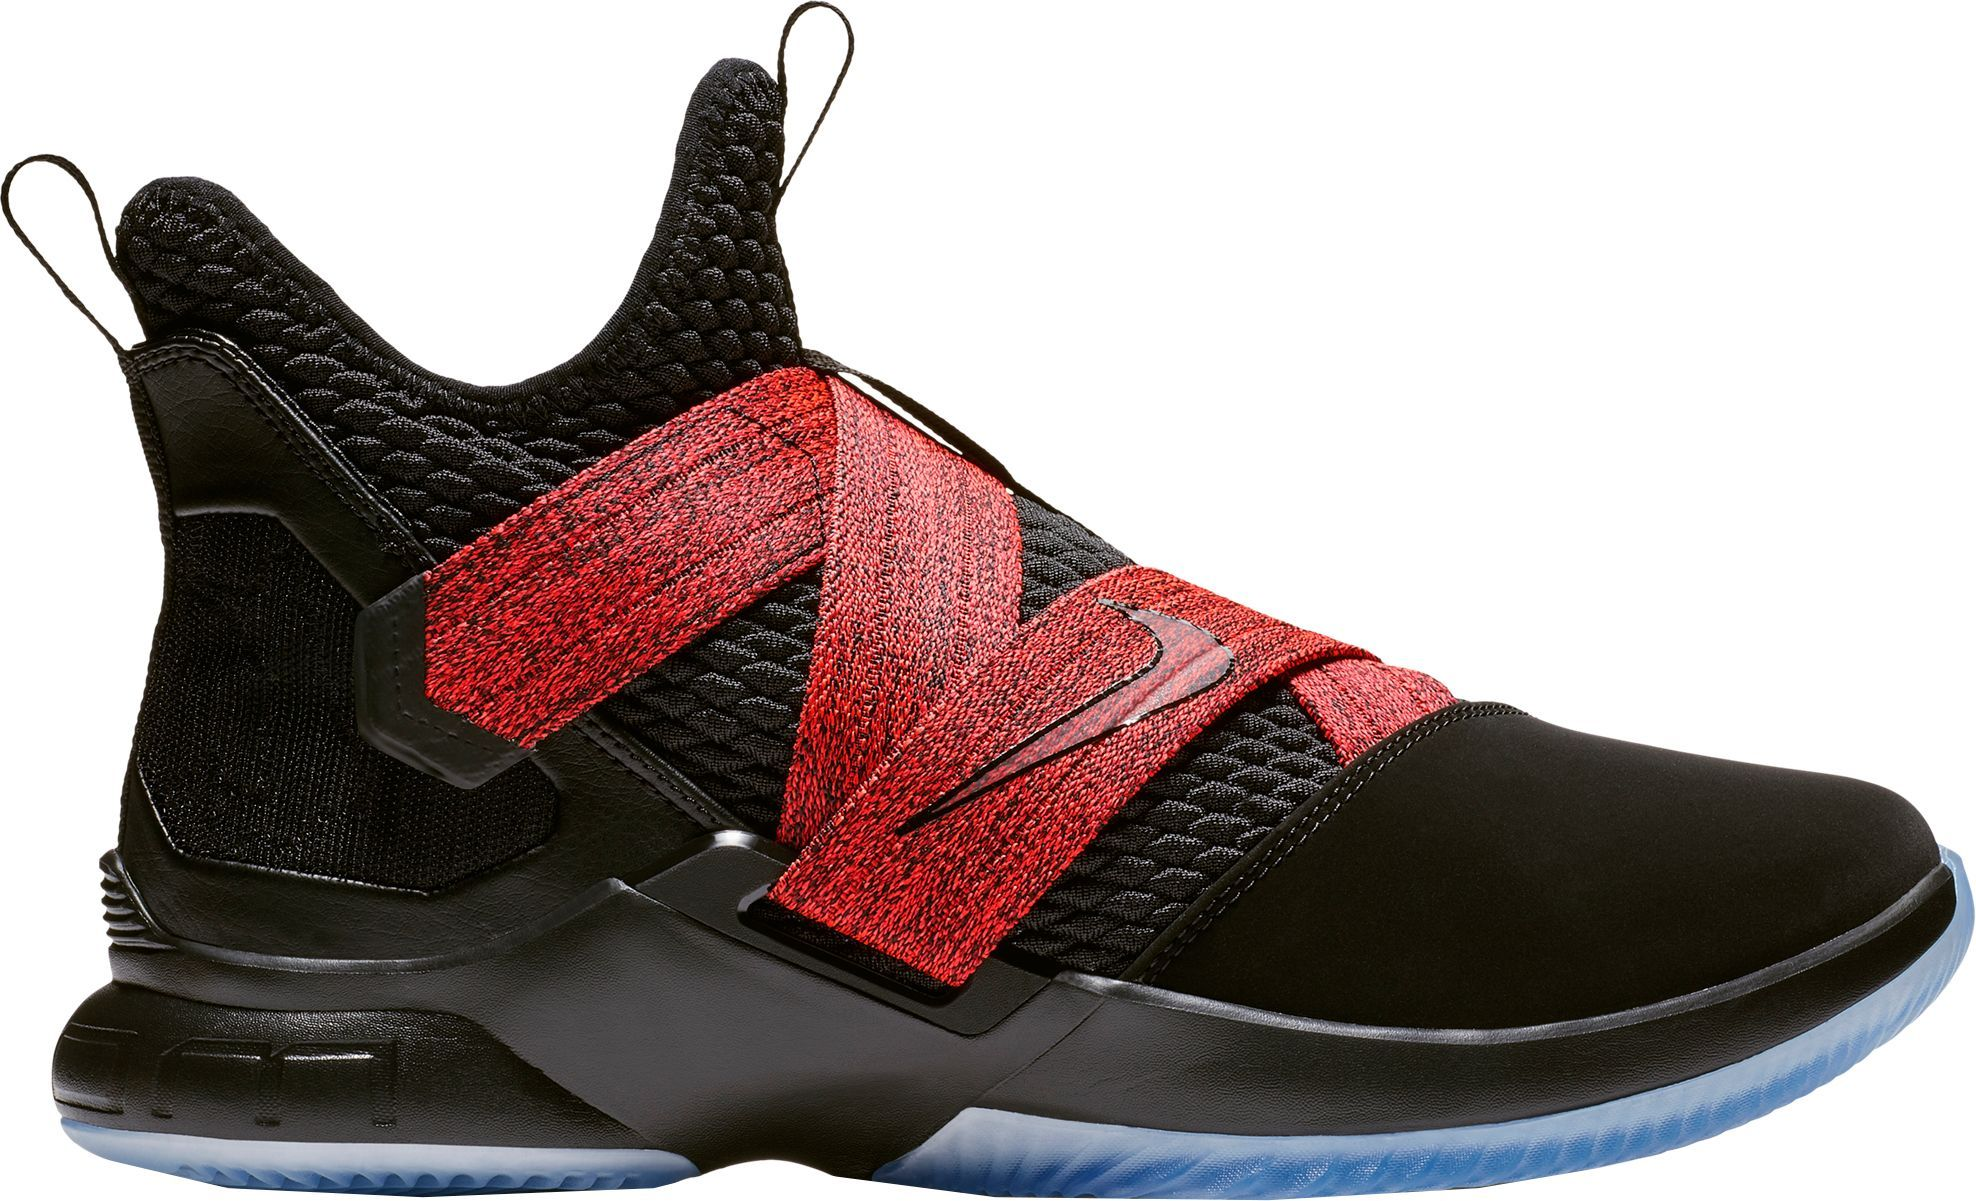 finest selection cfa10 3d27f Nike Zoom LeBron Soldier XII Basketball Shoes | Products ...